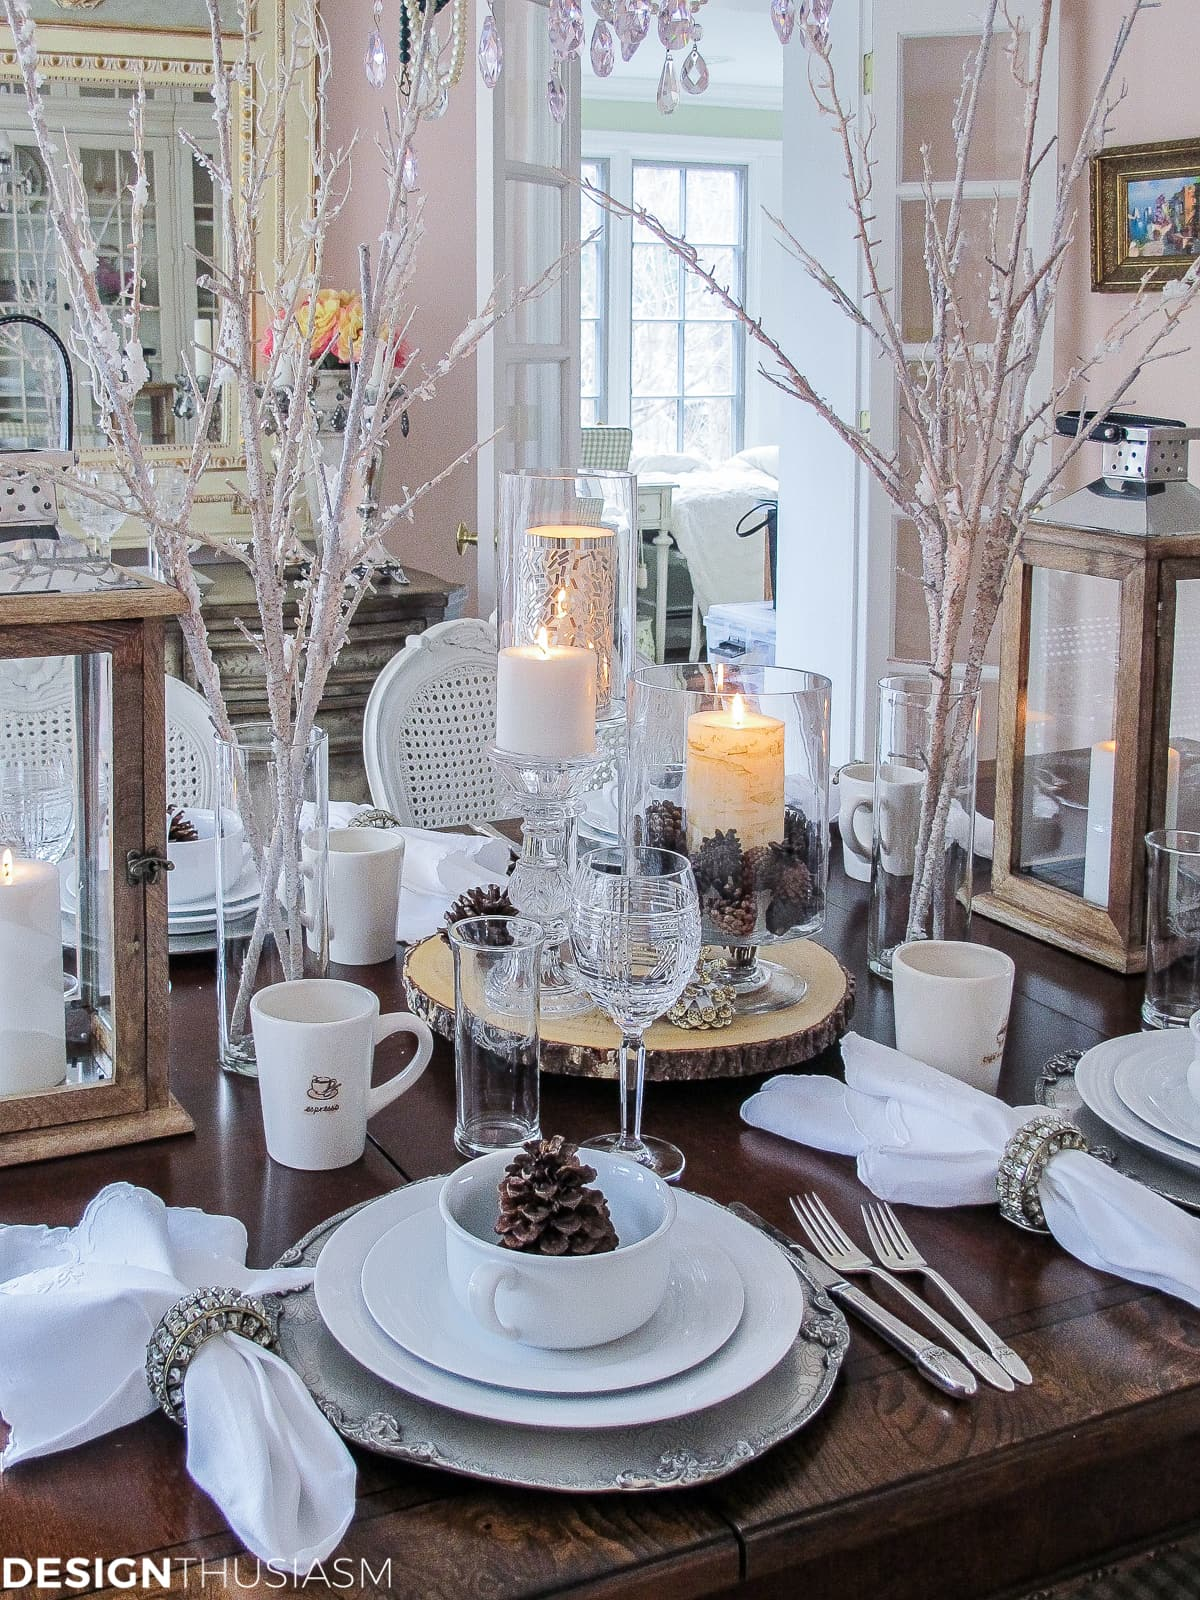 White Tablescape Comes Alive with Winter Decorations | Designthuisasm.com